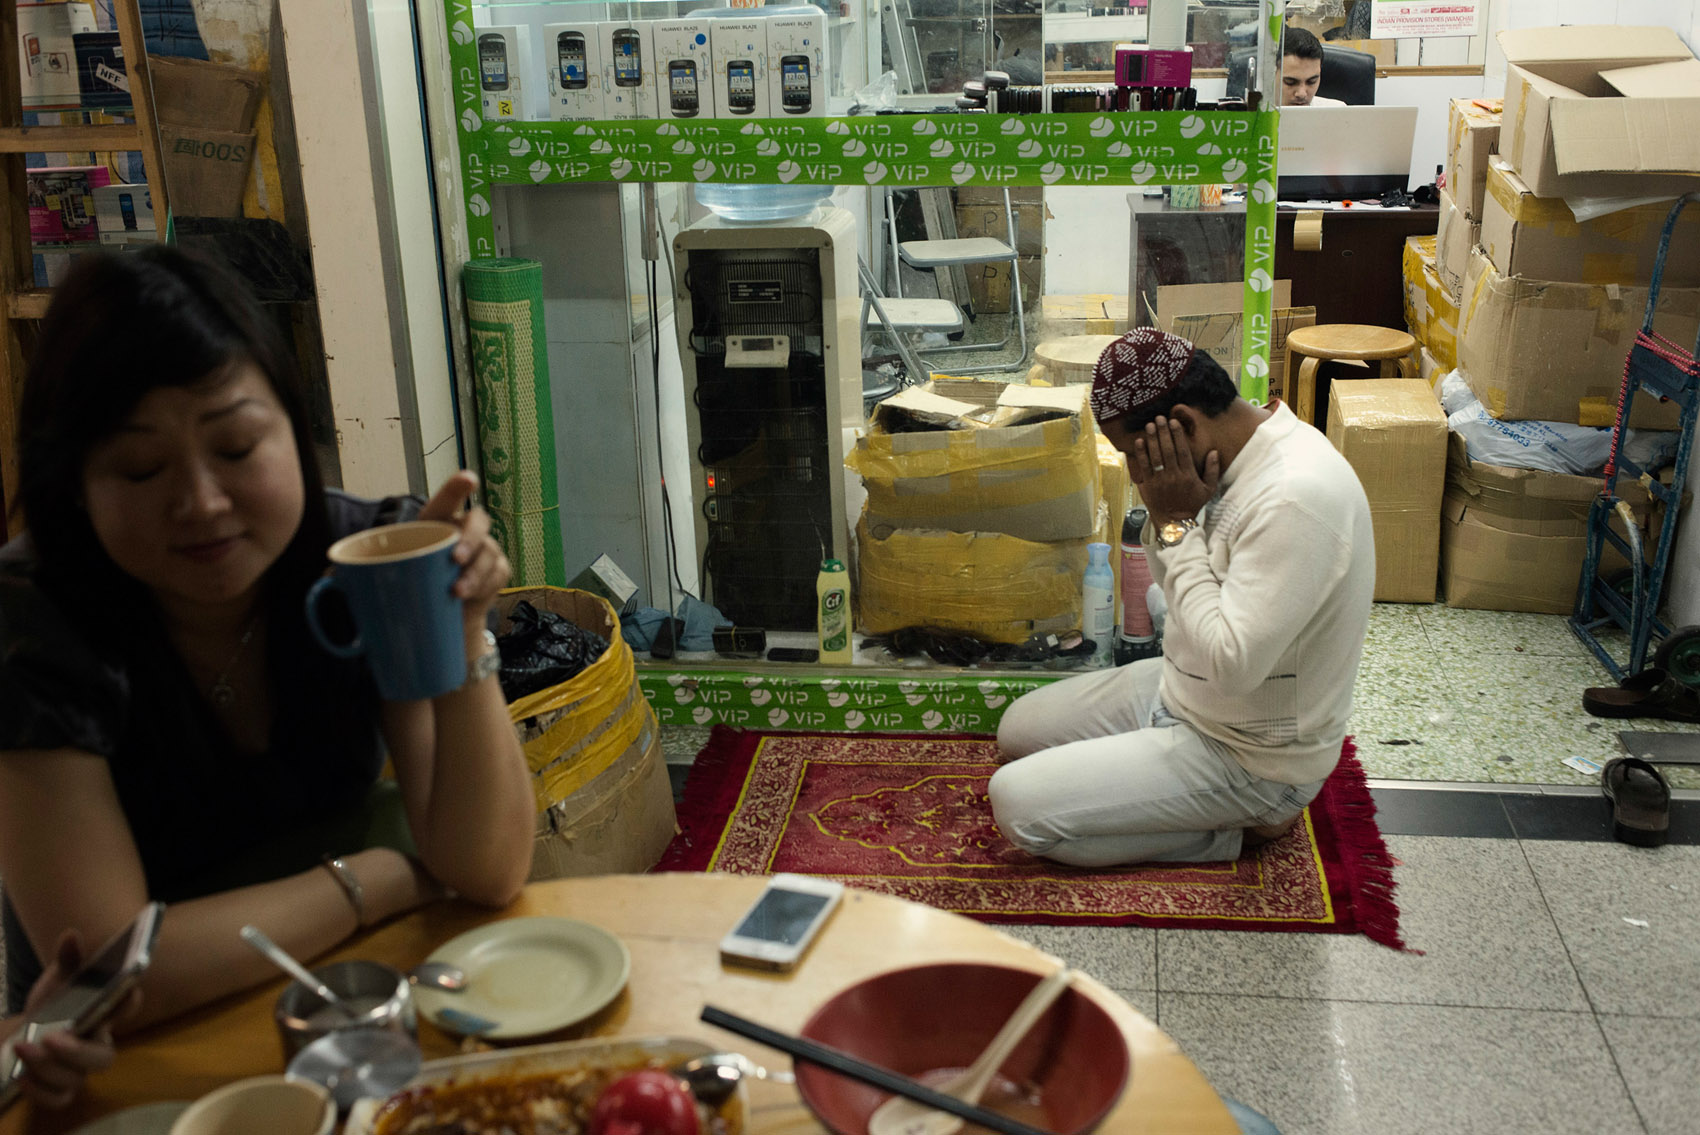 A Muslim trader inside kneeled for his evening prayer, in front of his store, next to mainland Chinese having dinner. Many of the businesses at the Chungking Mansions are ran by Muslims. They mostly go and pray at the nearby mosque on Nathan Road, the biggest in Hong Kong, but when they don't have time they will pray inside the Mansions.